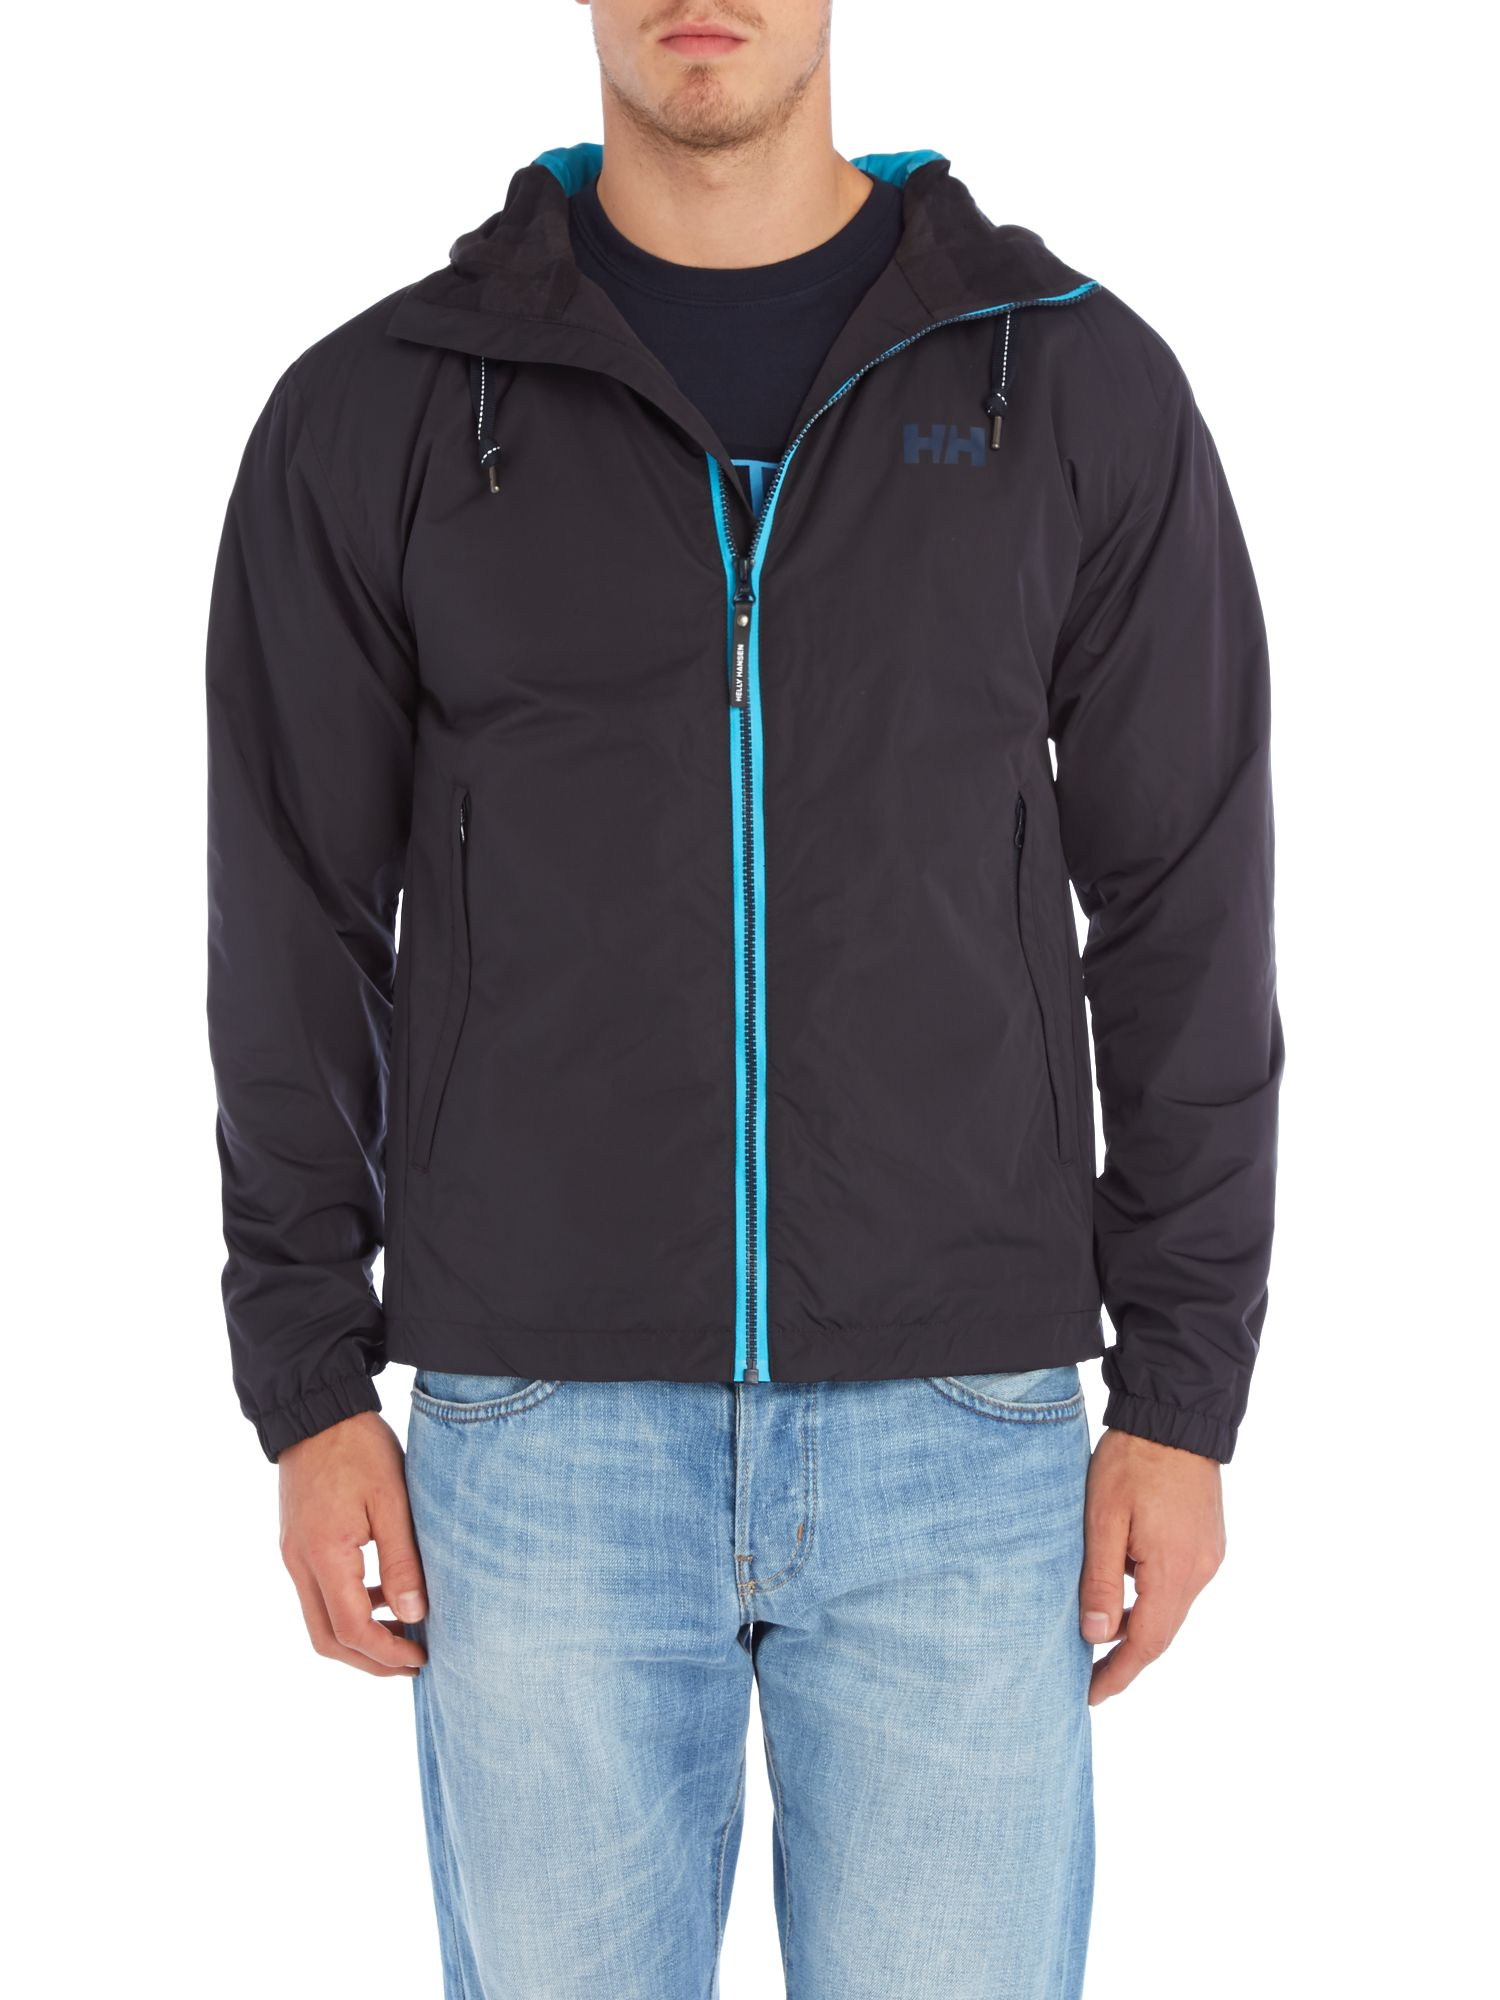 Marstrand packable jacket